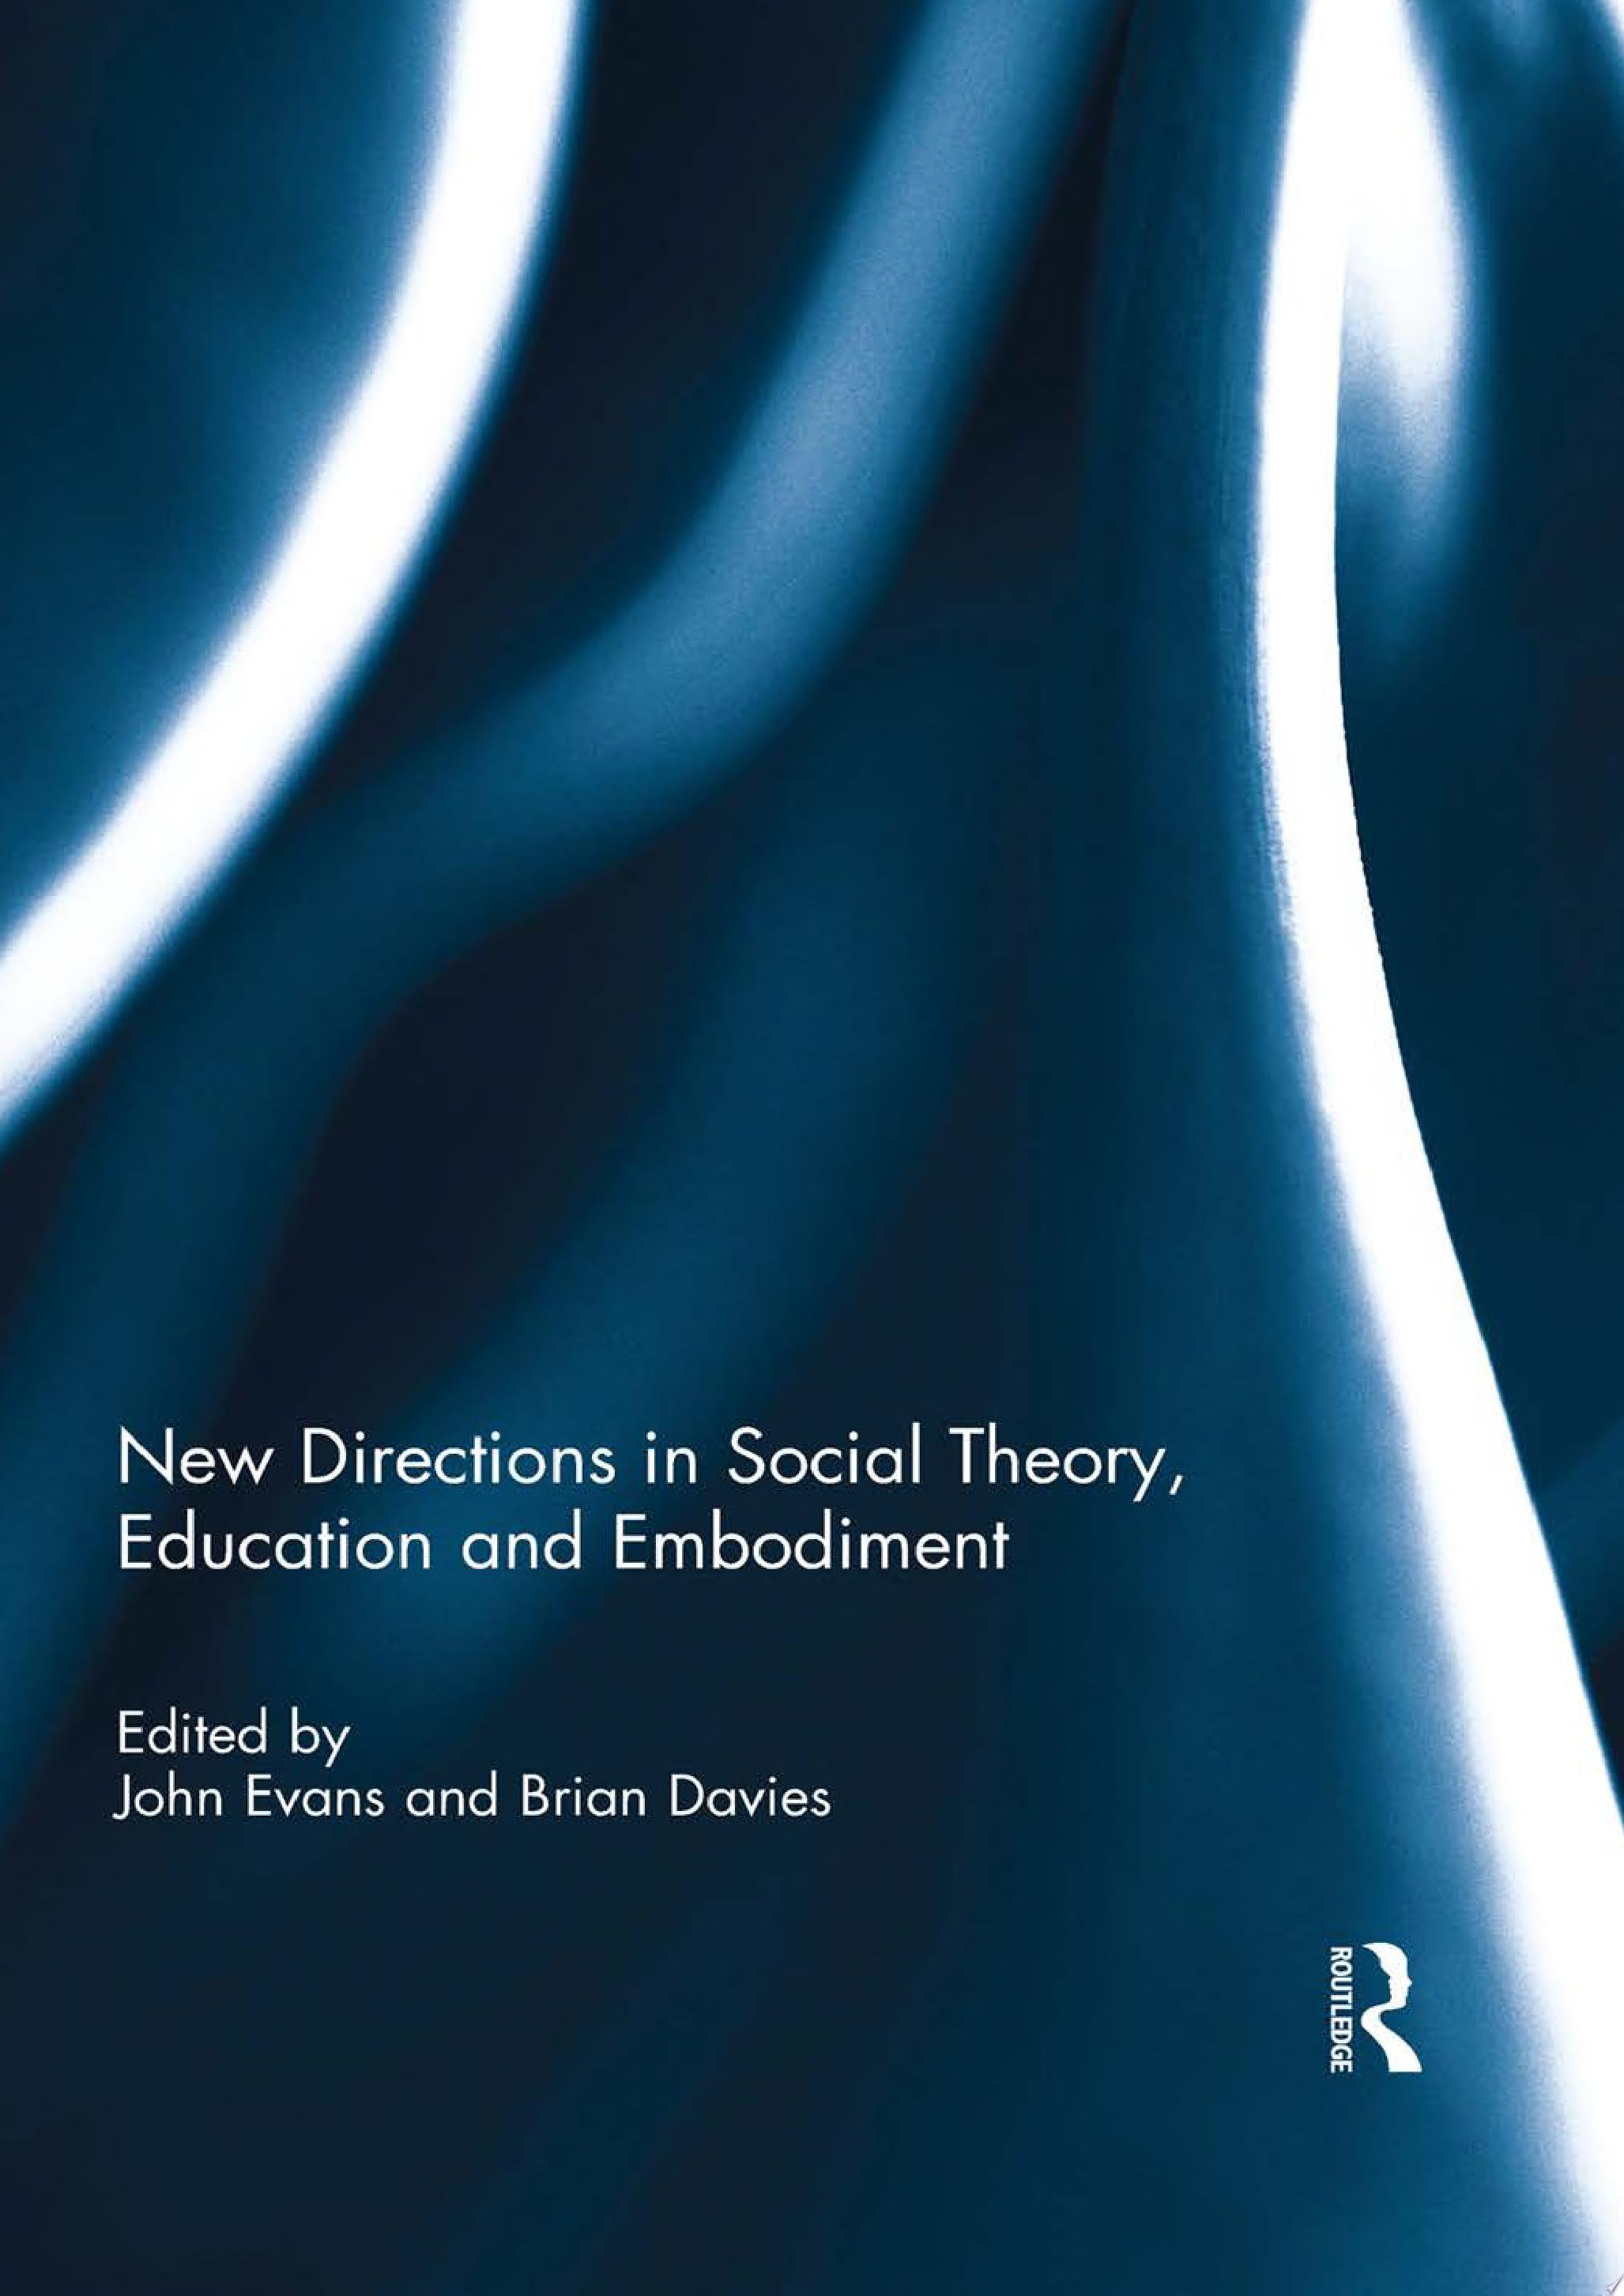 New Directions in Social Theory  Education and Embodiment